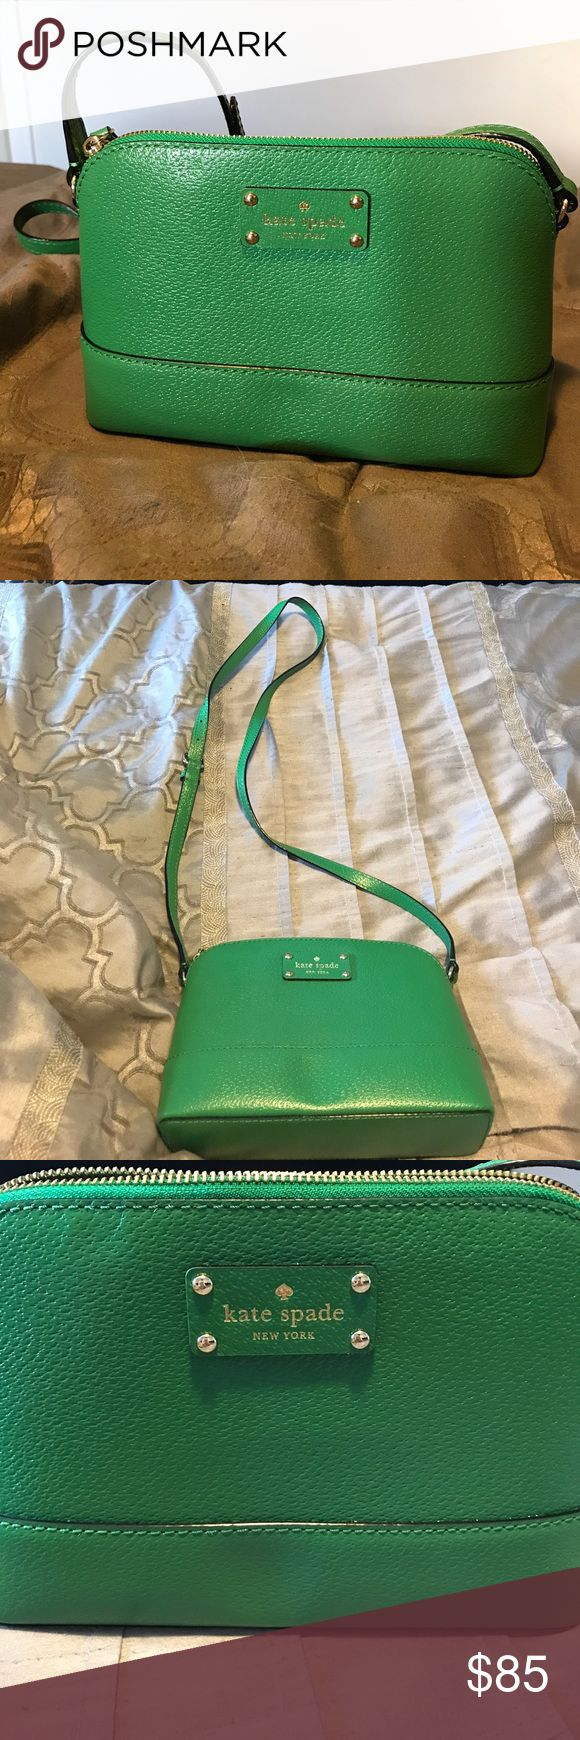 Kate Spade kelly green cross body handbag Brand new, never worn. Perfect condition kate spade Bags Crossbody Bags